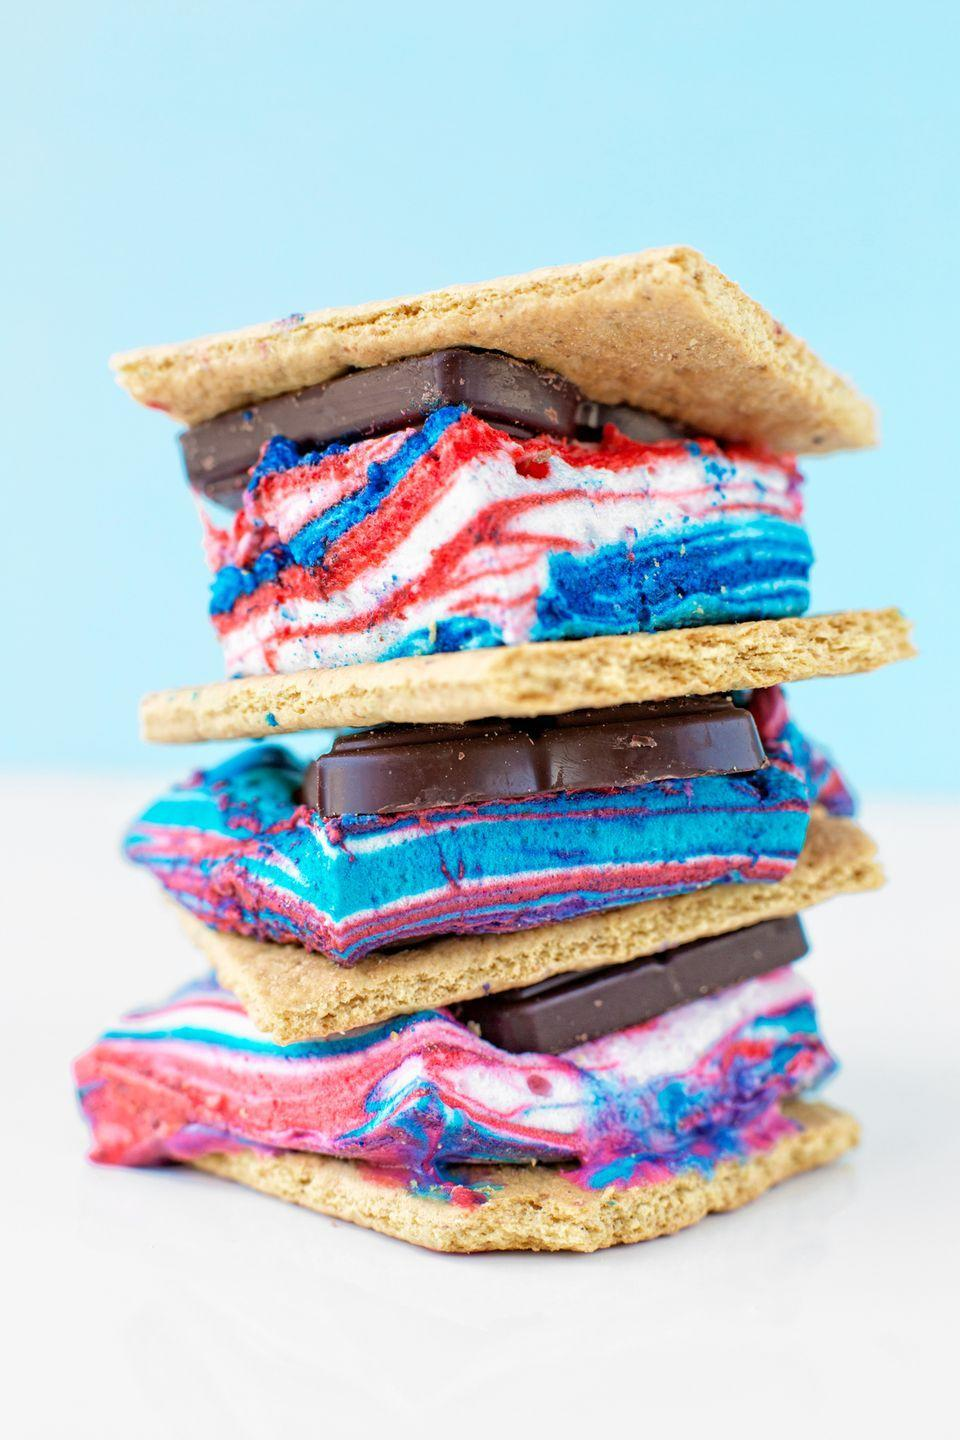 """<p>Round out the night with a sweet surprise—ooey-gooey red, white, and blue s'mores. </p><p><a class=""""link rapid-noclick-resp"""" href=""""https://studiodiy.com/tie-dye-fourth-july-smores/"""" rel=""""nofollow noopener"""" target=""""_blank"""" data-ylk=""""slk:GET THE RECIPE"""">GET THE RECIPE</a></p><p><a class=""""link rapid-noclick-resp"""" href=""""https://www.amazon.com/Marshmallow-Roasting-Extendable-PcsTelescoping-Campfire/dp/B071NP7R23/ref=sr_1_7?dchild=1&keywords=s%27mores&qid=1591629790&sr=8-7&tag=syn-yahoo-20&ascsubtag=%5Bartid%7C10072.g.32715018%5Bsrc%7Cyahoo-us"""" rel=""""nofollow noopener"""" target=""""_blank"""" data-ylk=""""slk:SHOP ROASTING STICKS"""">SHOP ROASTING STICKS</a></p>"""